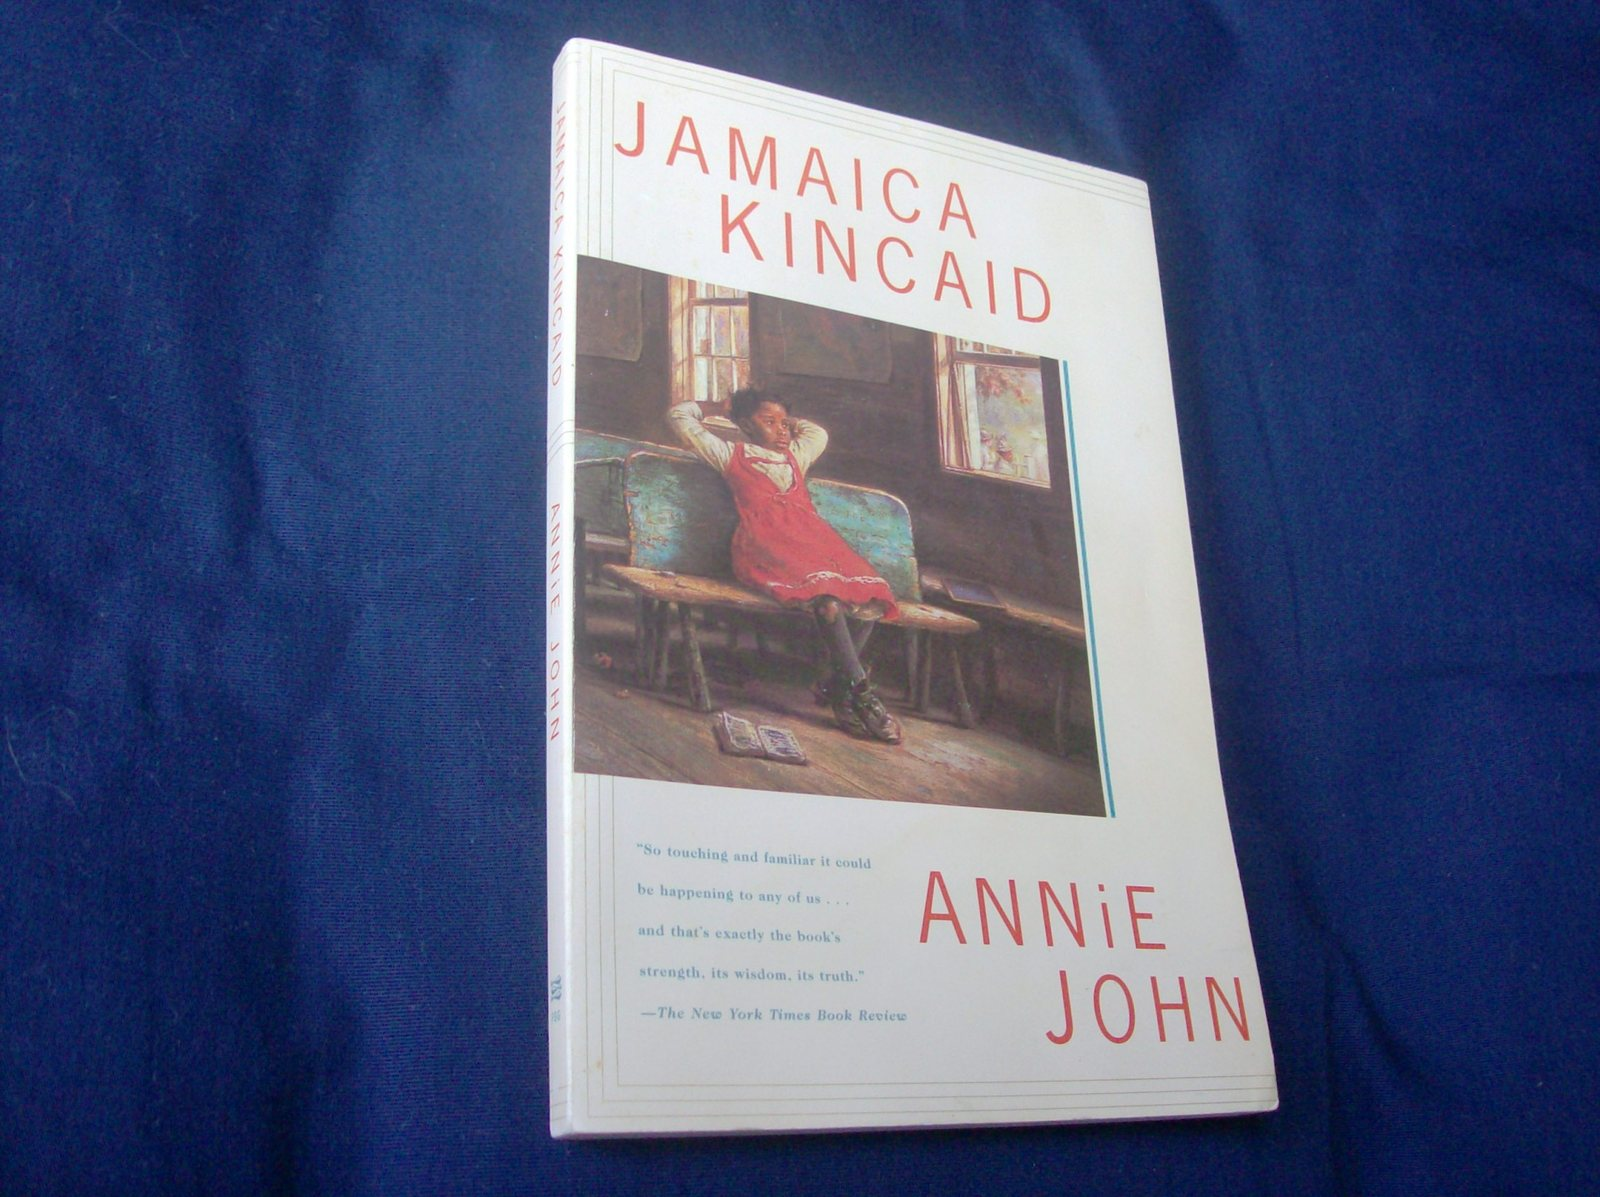 a summary of annie john a novel by jamaica kincaid In the novel, annie john revisits her early childhood experience when she was growing up in the island of antigua under the care and the watch of her mother the book begins with a description of annie love and adore for her mother but her love for her mother is more of a soul crush than normal.